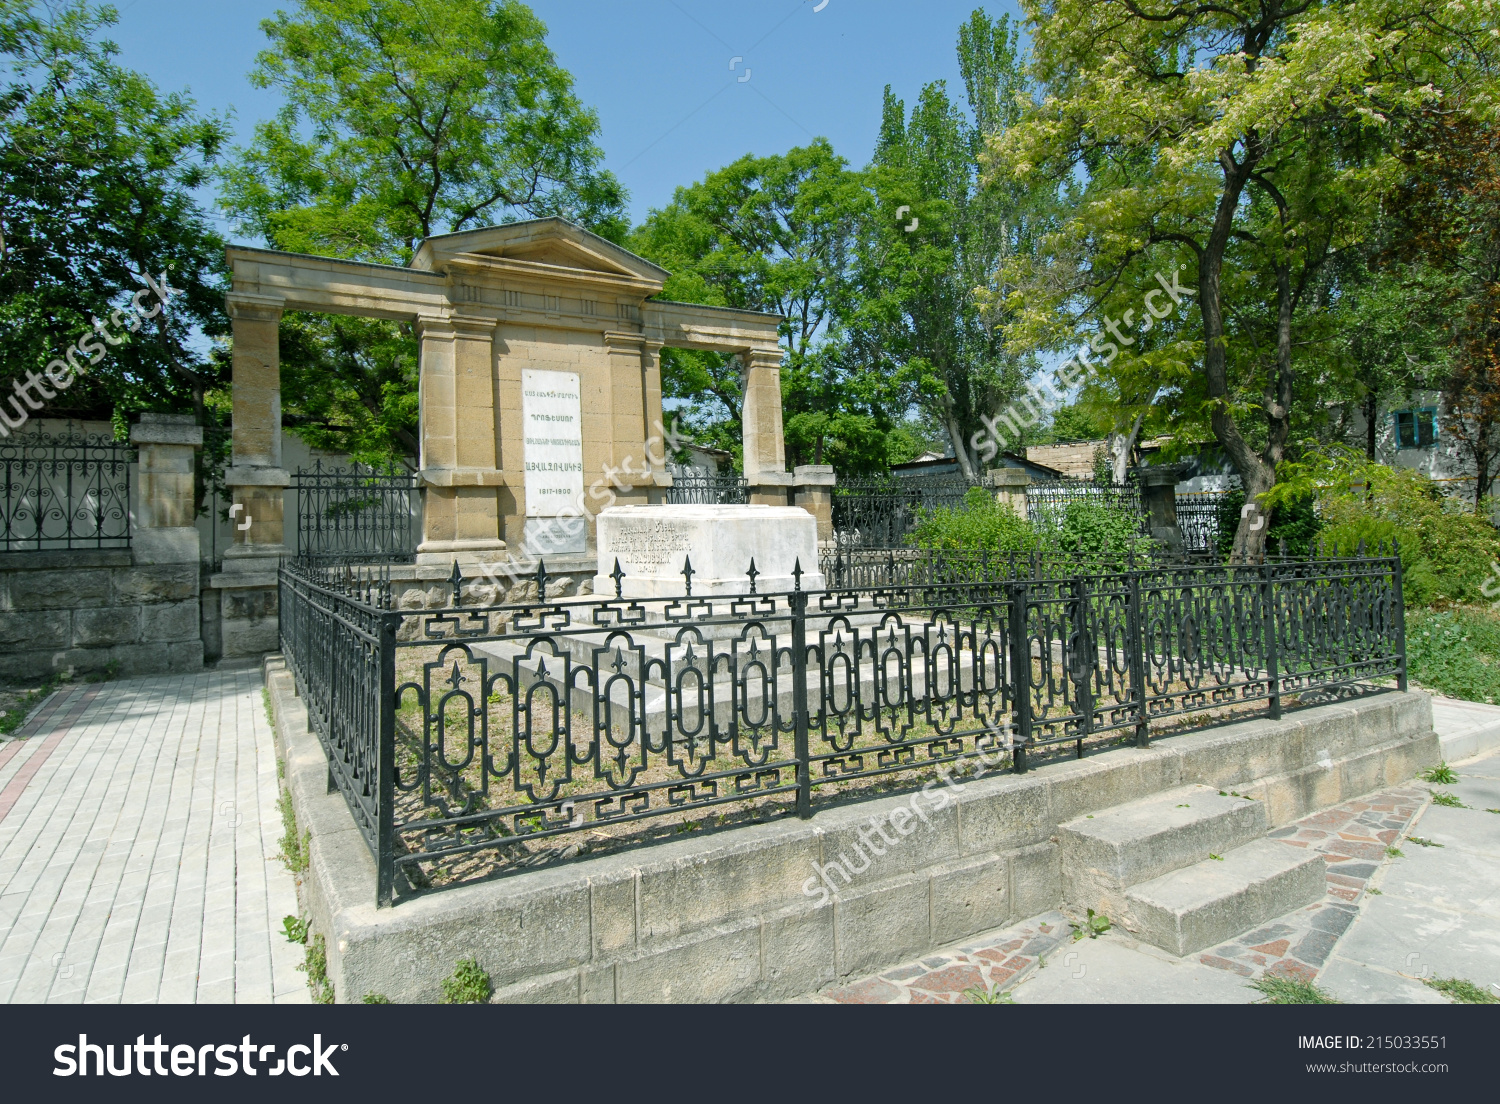 This Is The Tomb (Grave) Of Ivan Aivazovsky In The Feodosia.